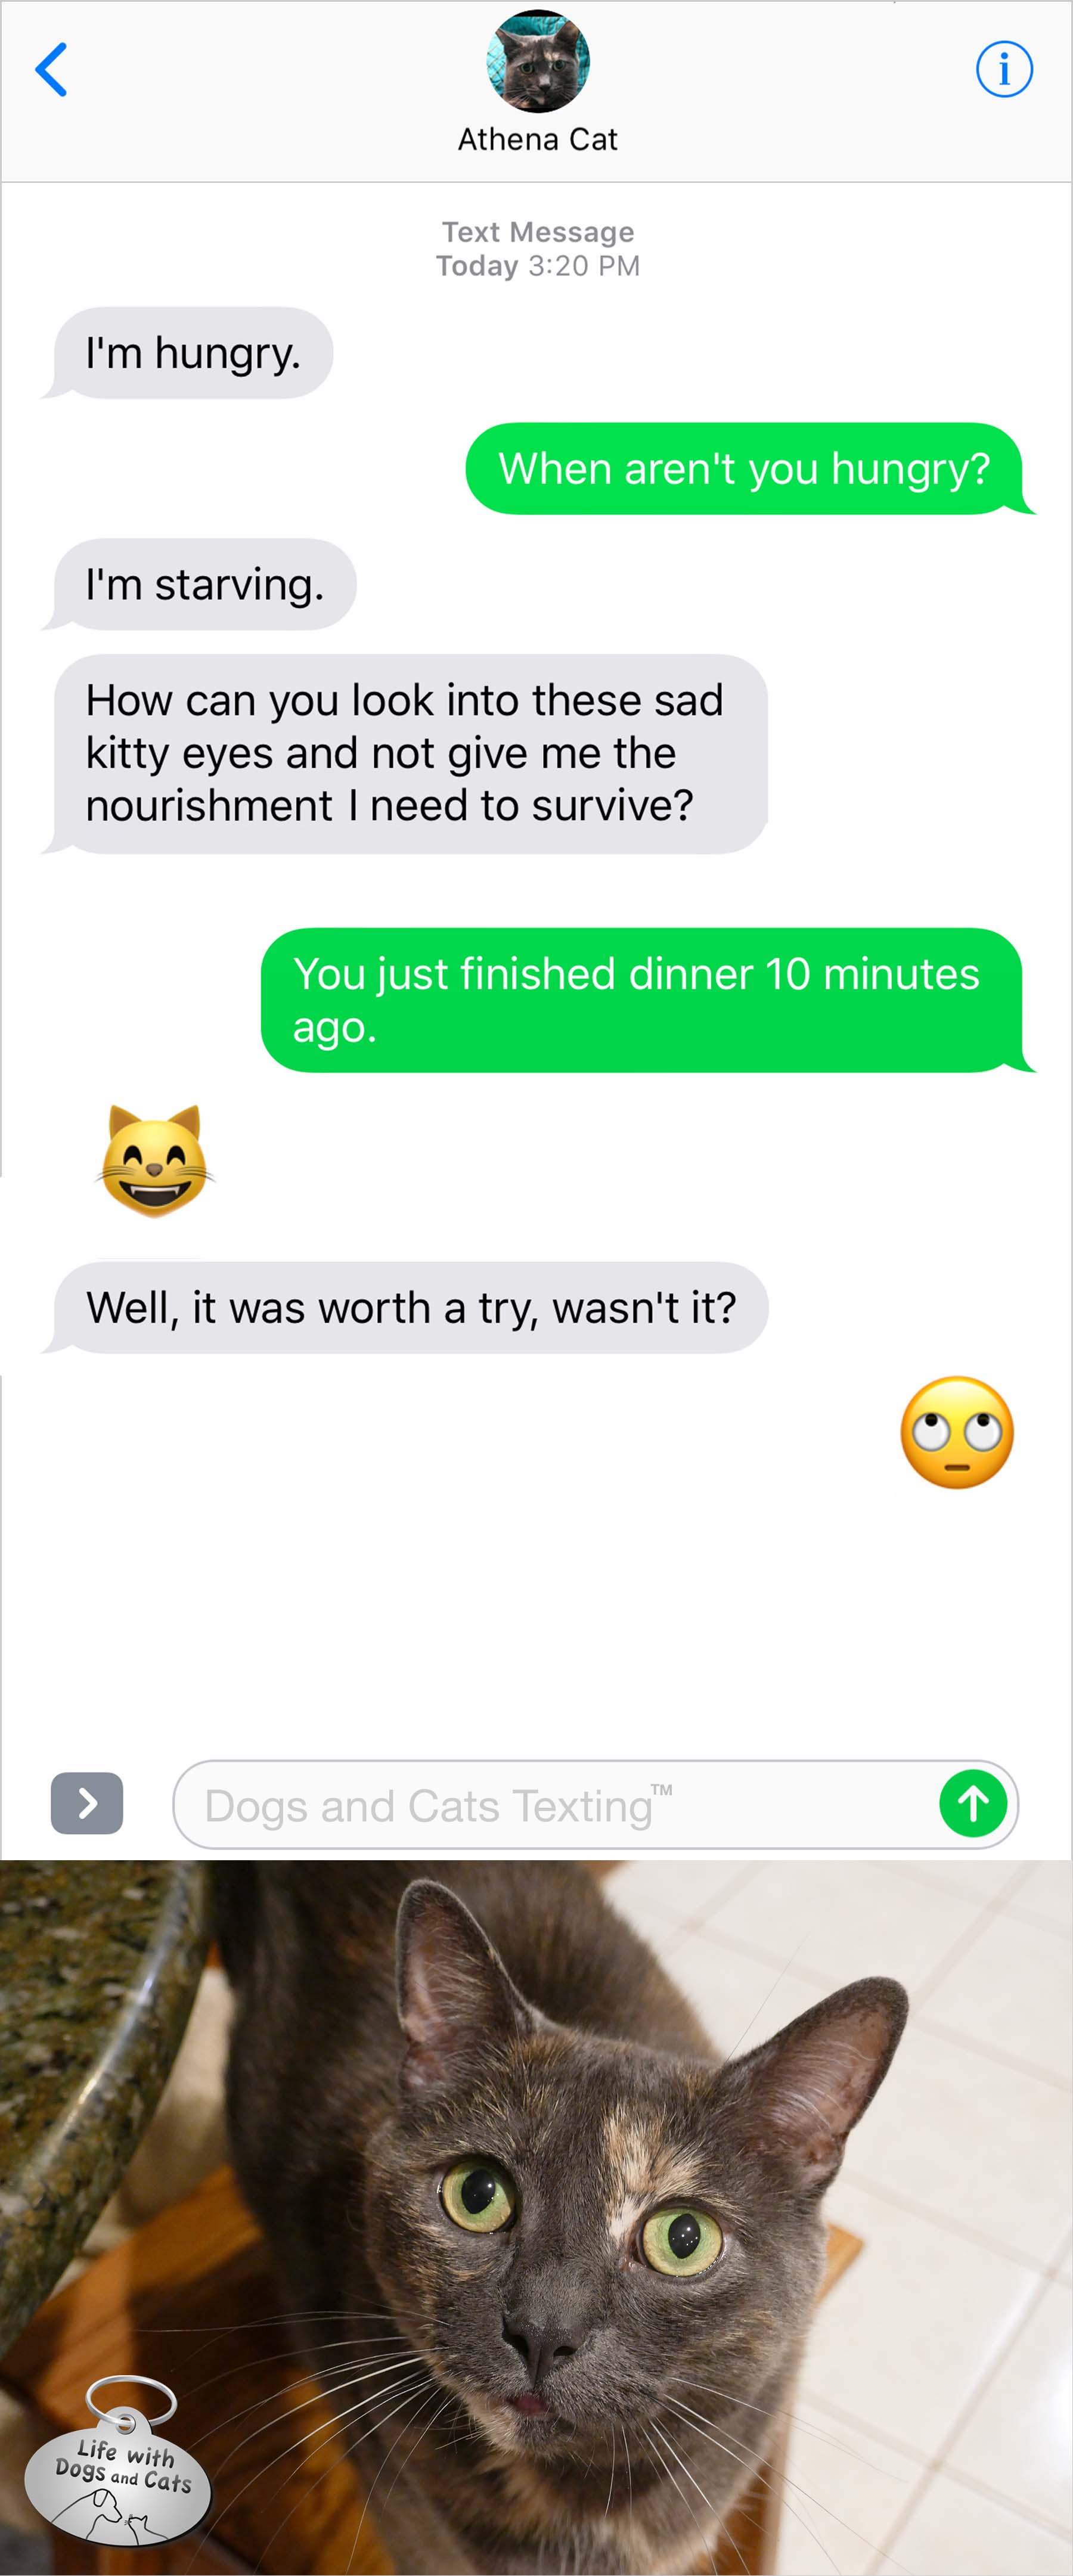 #TextFromCat I'm hungry. Me: When aren't you hungry? Cat: I'm starving. How can you look into these sad kitty eyes and not give me the nourishment I need to survive. Me: You just finished dinner 10 minutes ago.